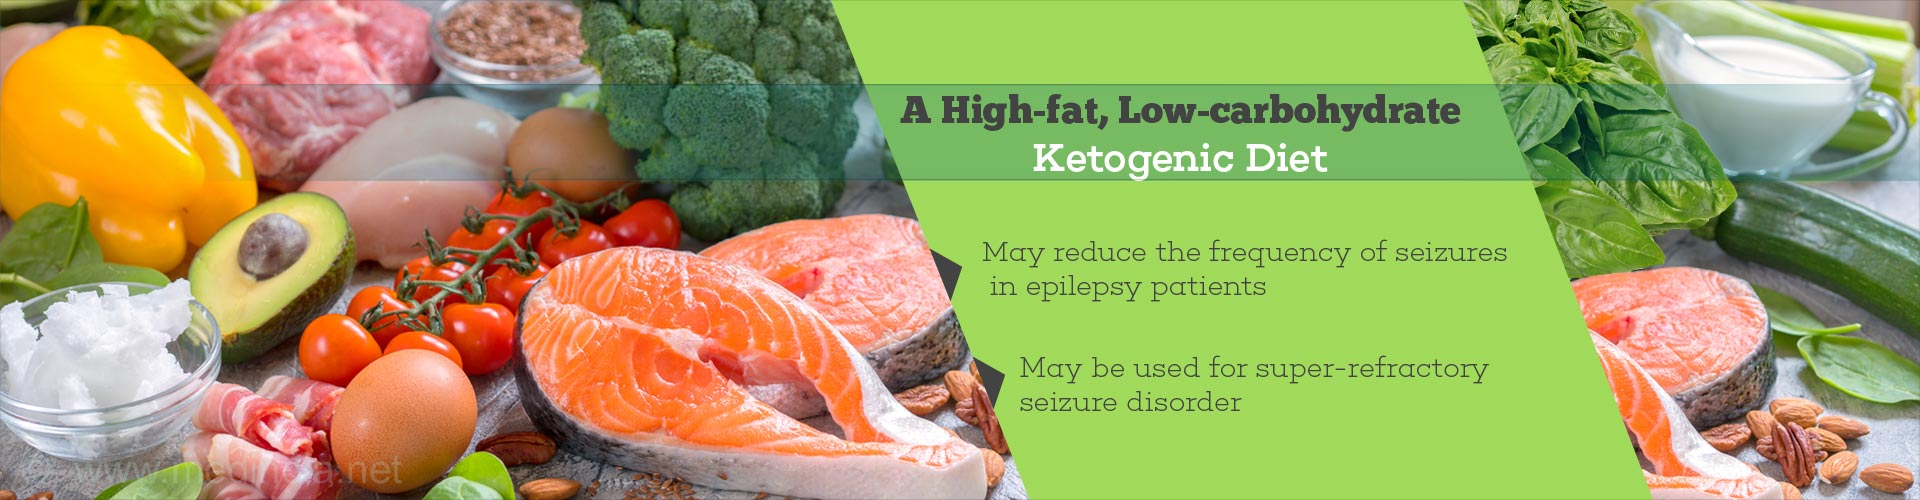 A high-fat, low carbohydrate ketogenic diet - may reduce the frequency of seizures in epilepsy patients - may be used for super-refractory seizure disorder